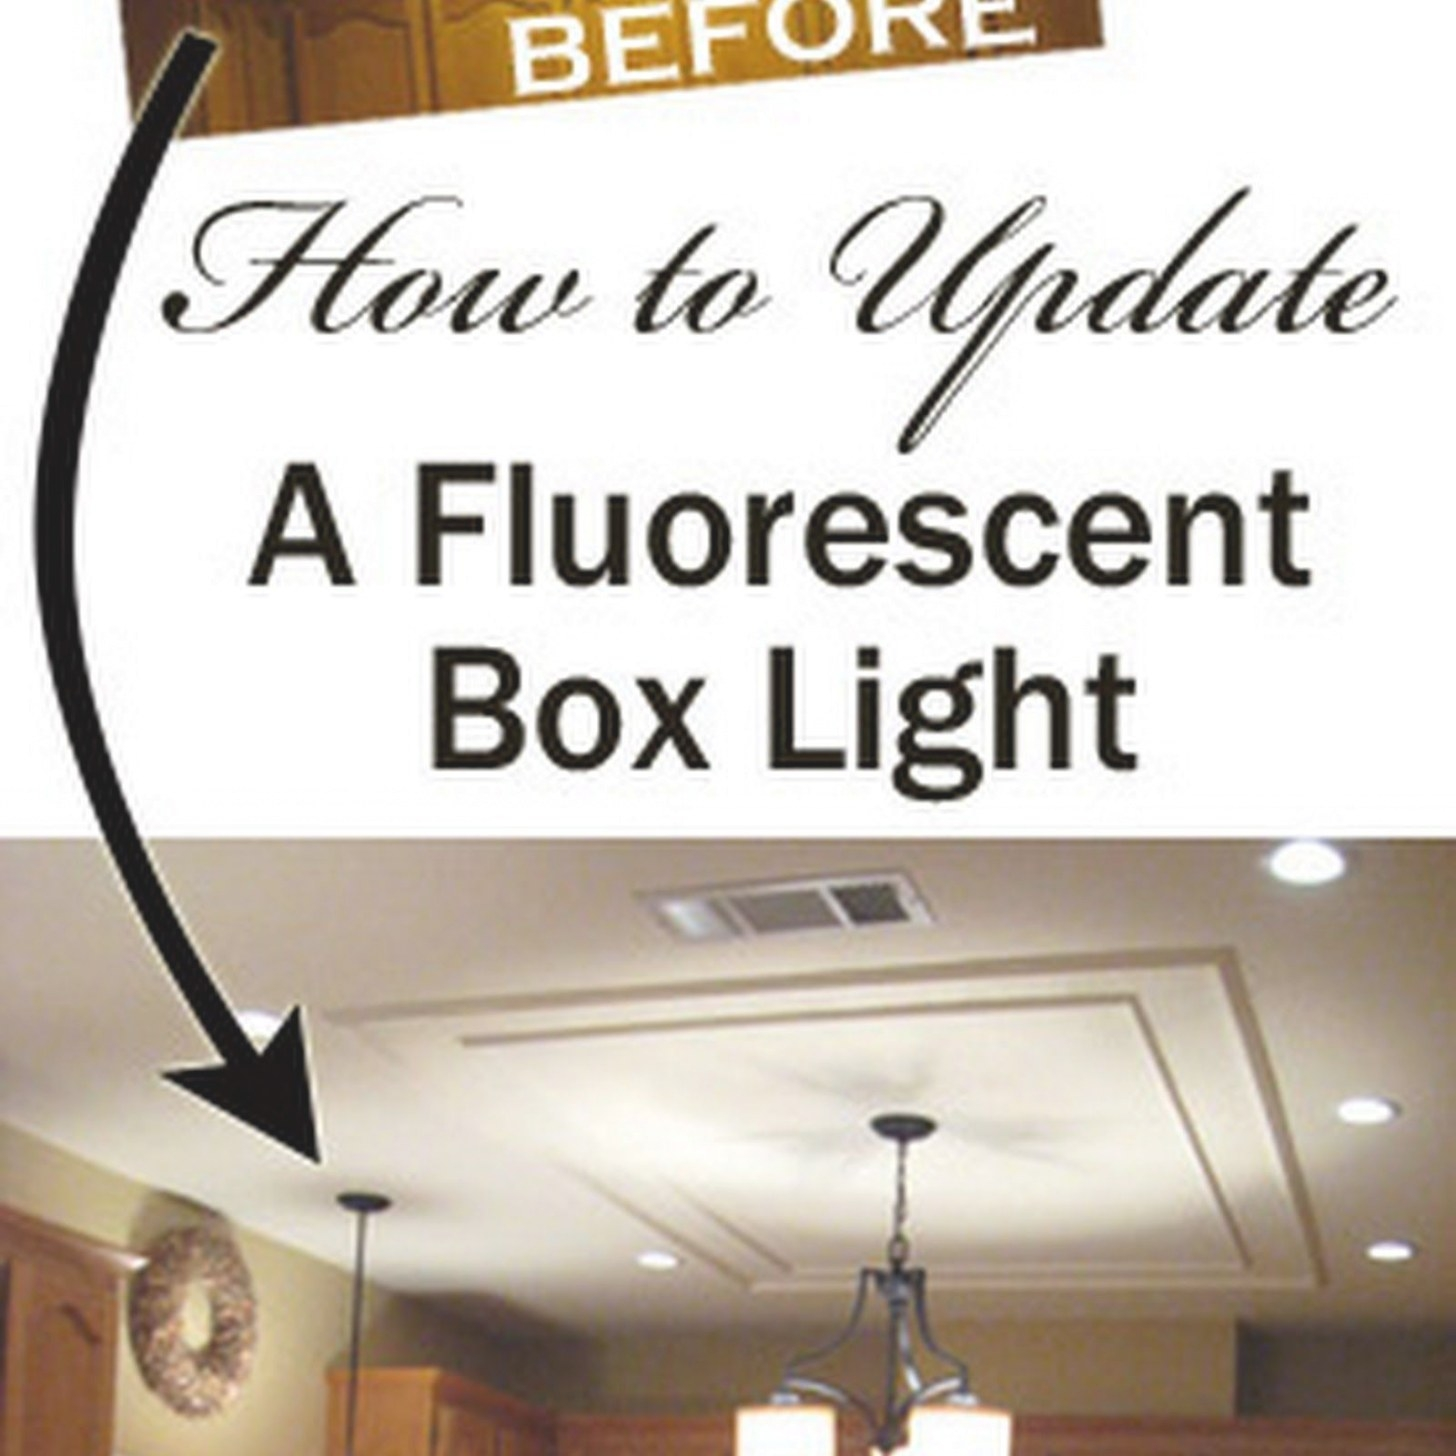 Removing A Fluorescent Kitchen Light Box In 2019 | Kitchen inside Replace Fluorescent Light Fixture In Kitchen